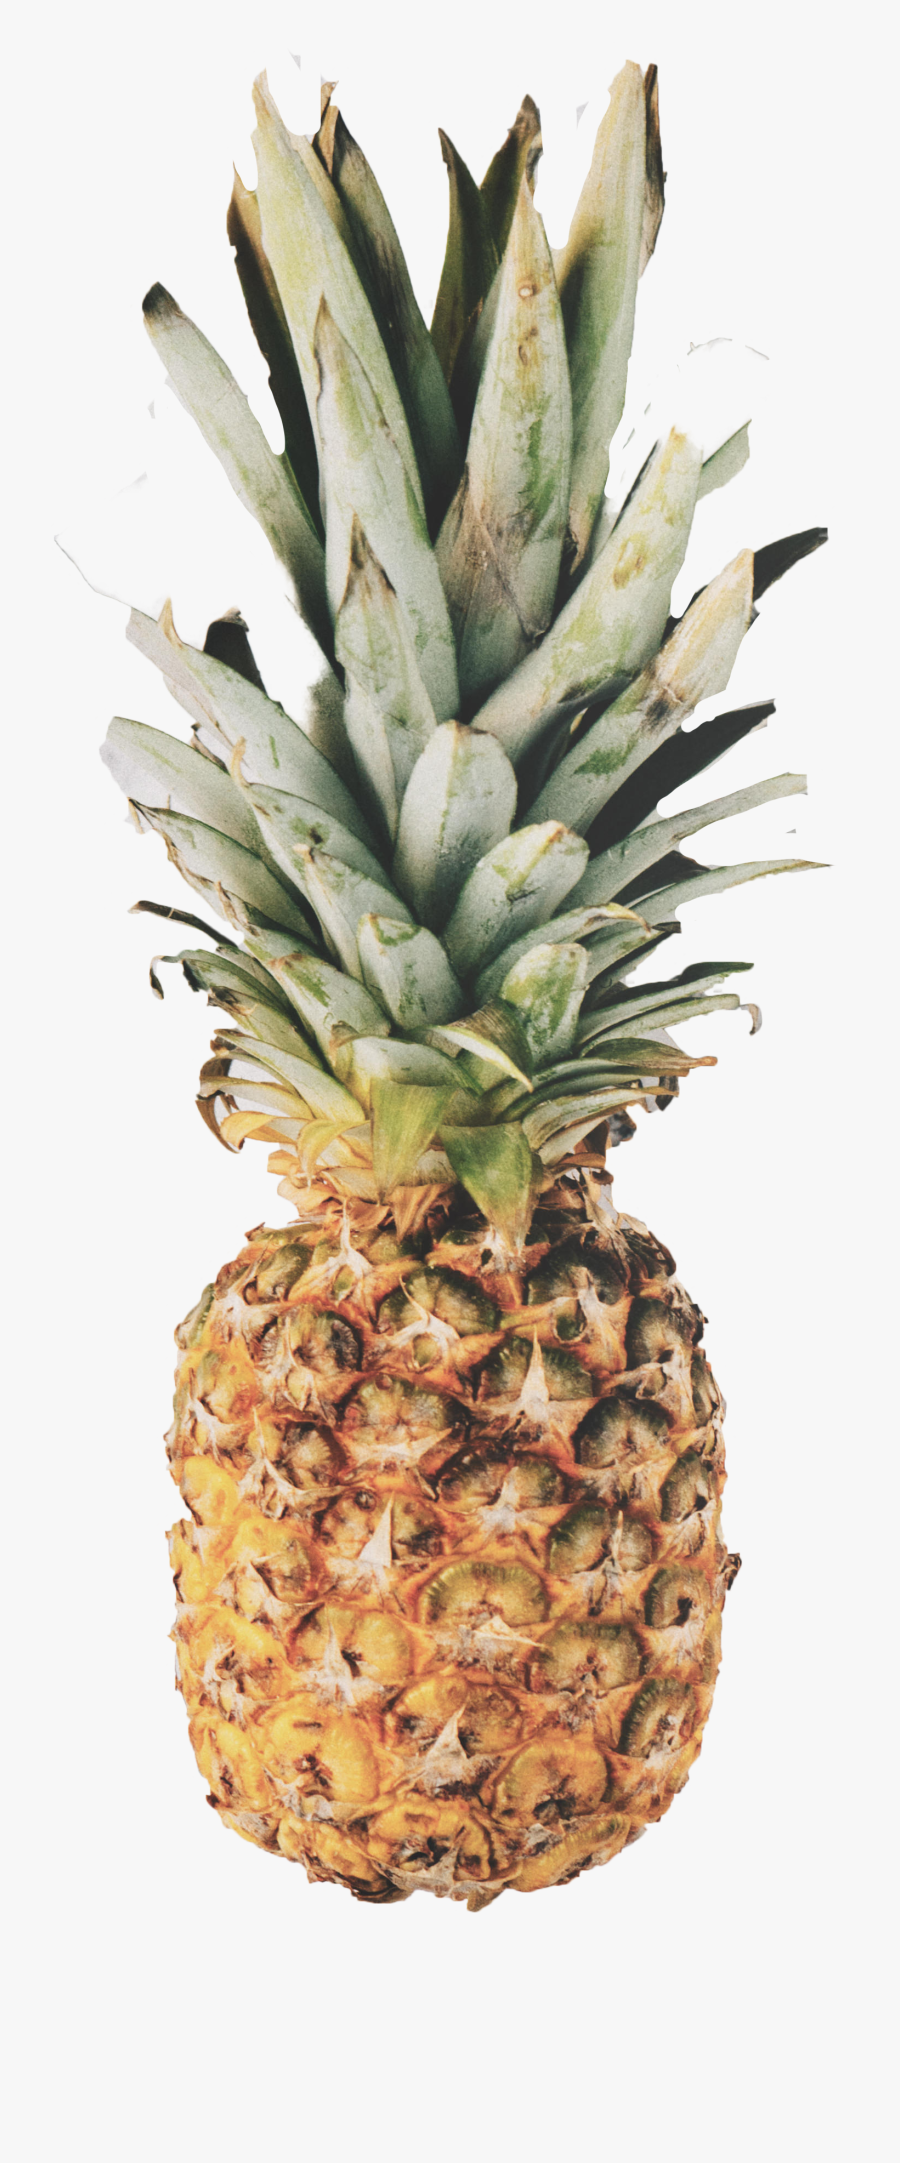 Download Transparent Png - Pineapple With Marble, Transparent Clipart